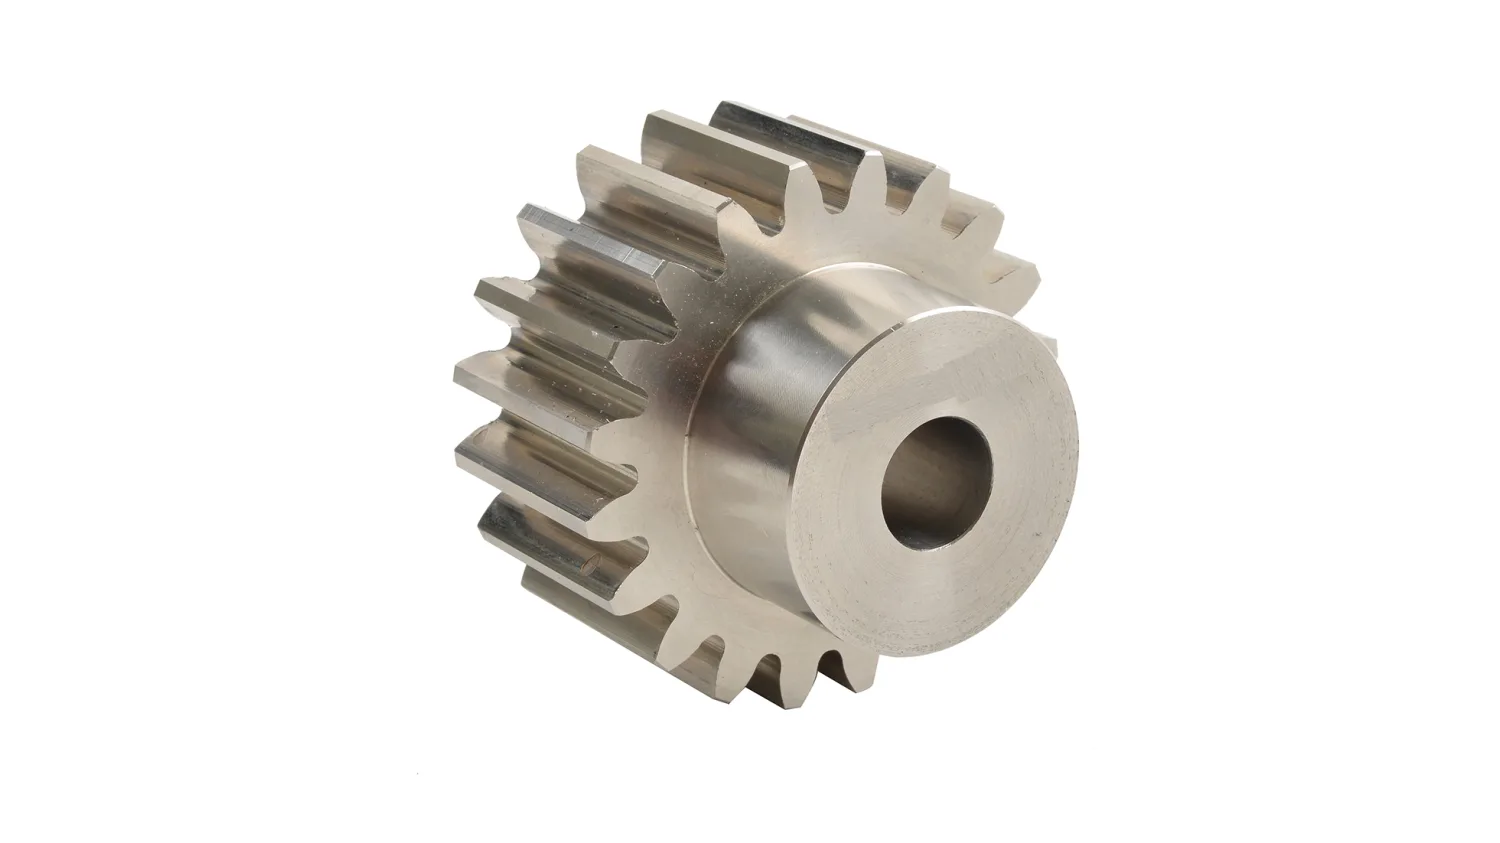 6-Mod-x-25-Tooth-Metric-Spur-Gear-in-Steel